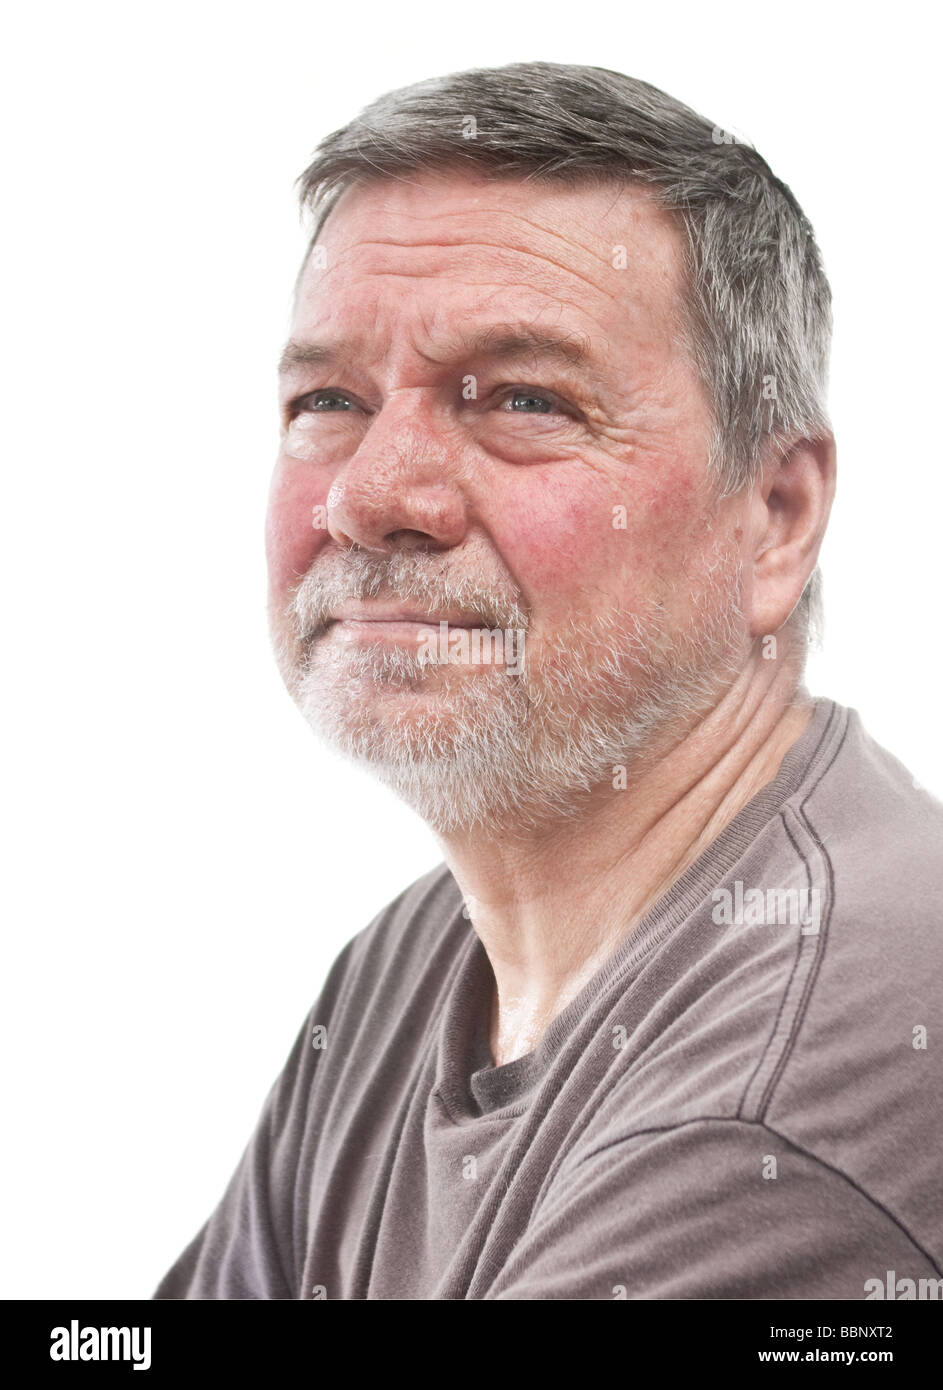 homeless man white beard on stock photos homeless man white beard